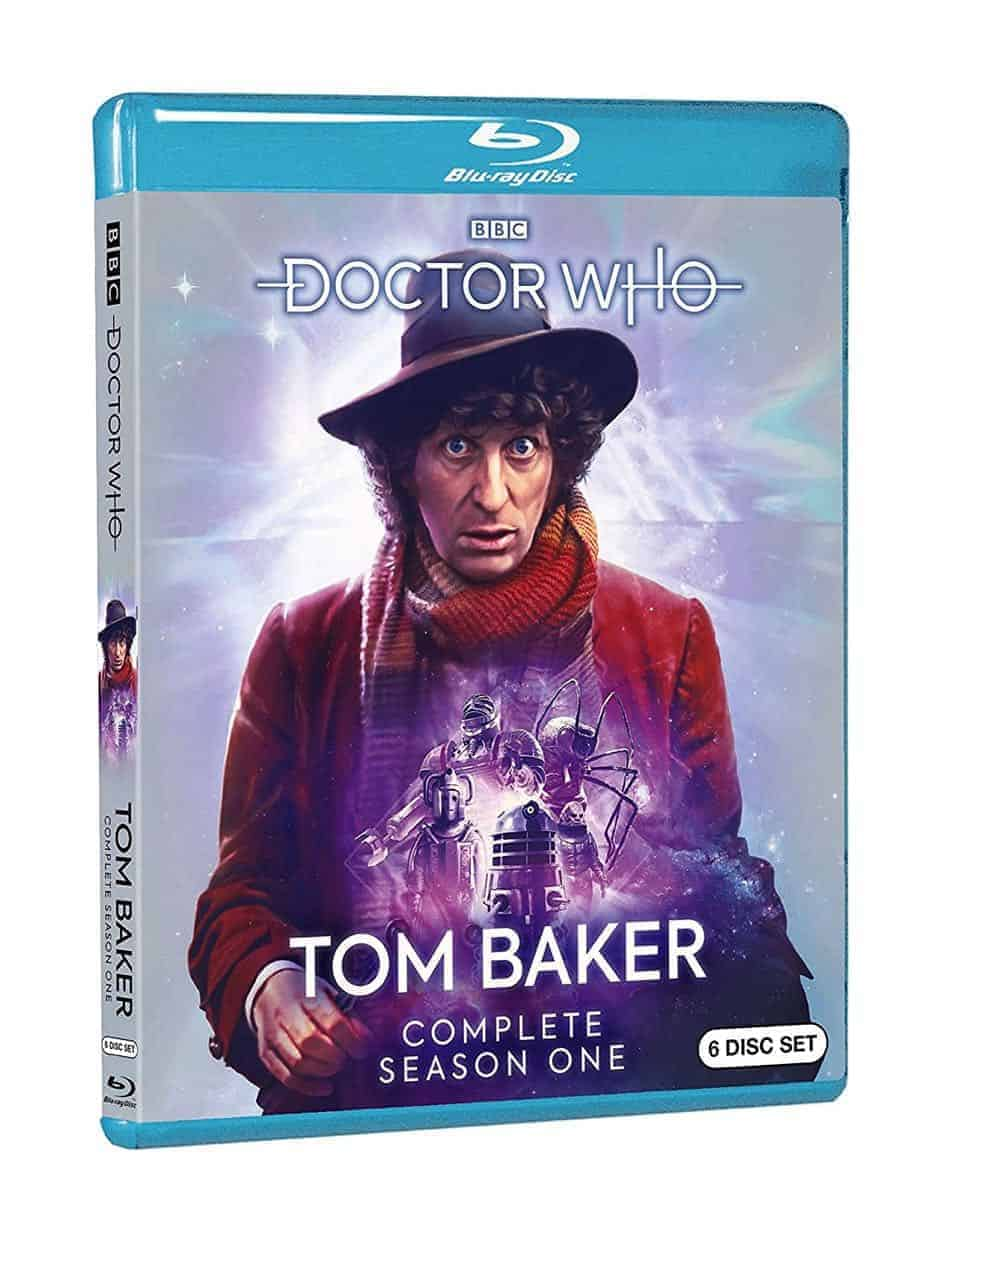 Doctor Who Tom Baker Complete Season One Bluray